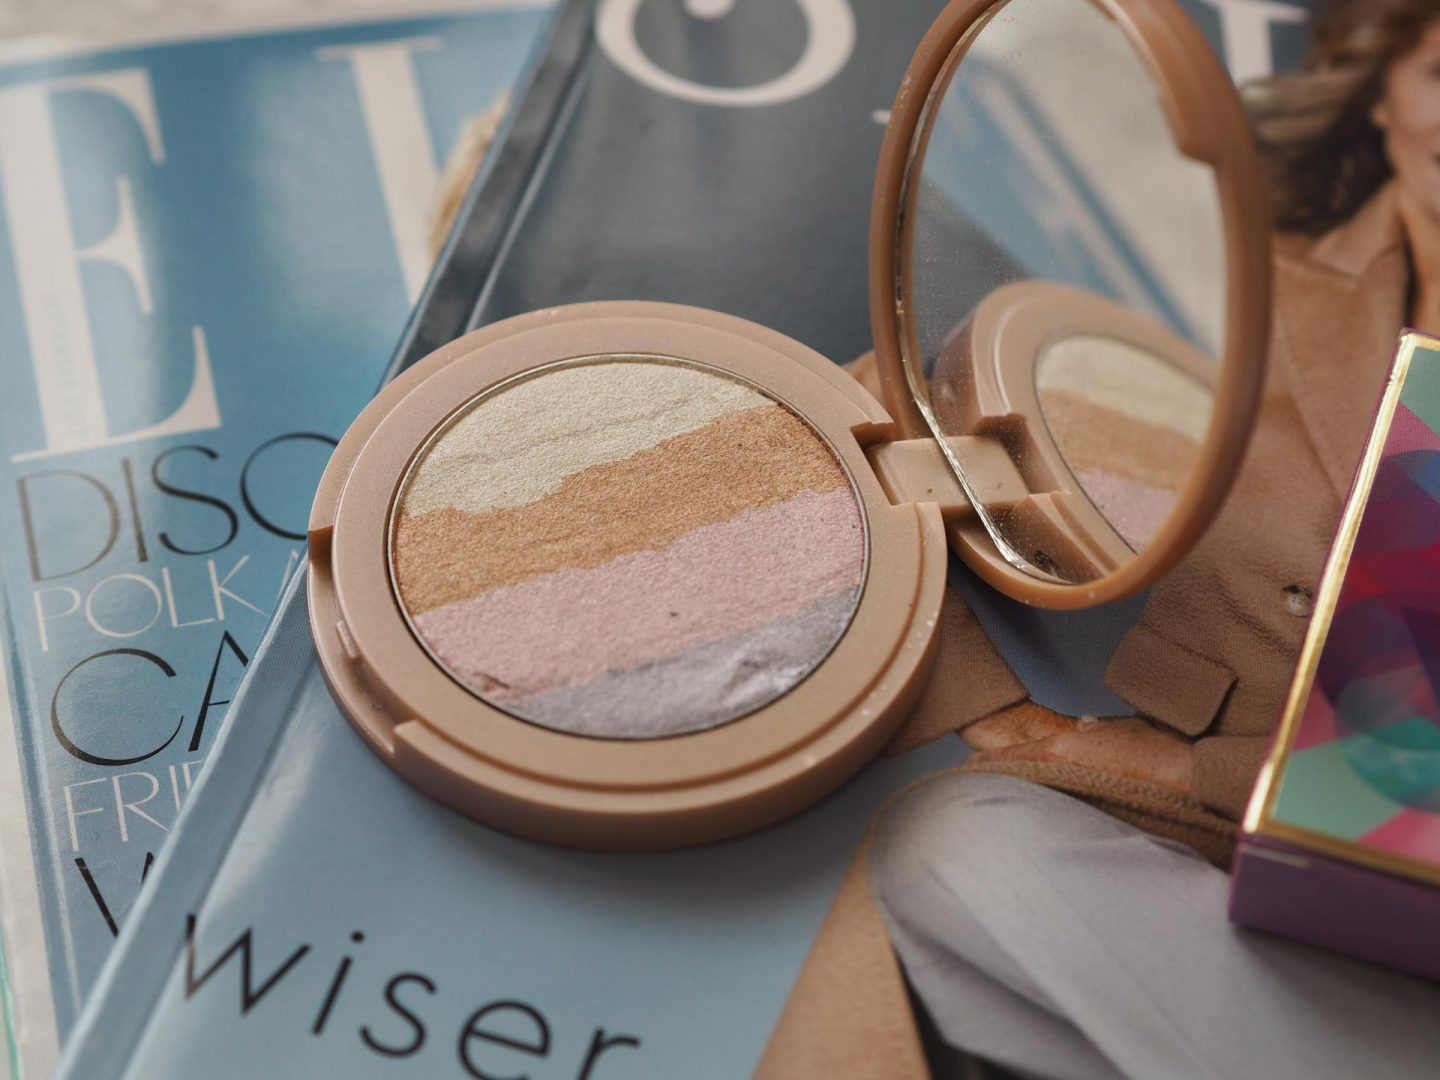 Top Luxe Make-up - Product: Tarte Rainbow Highlighter (Exclusive to QVC)